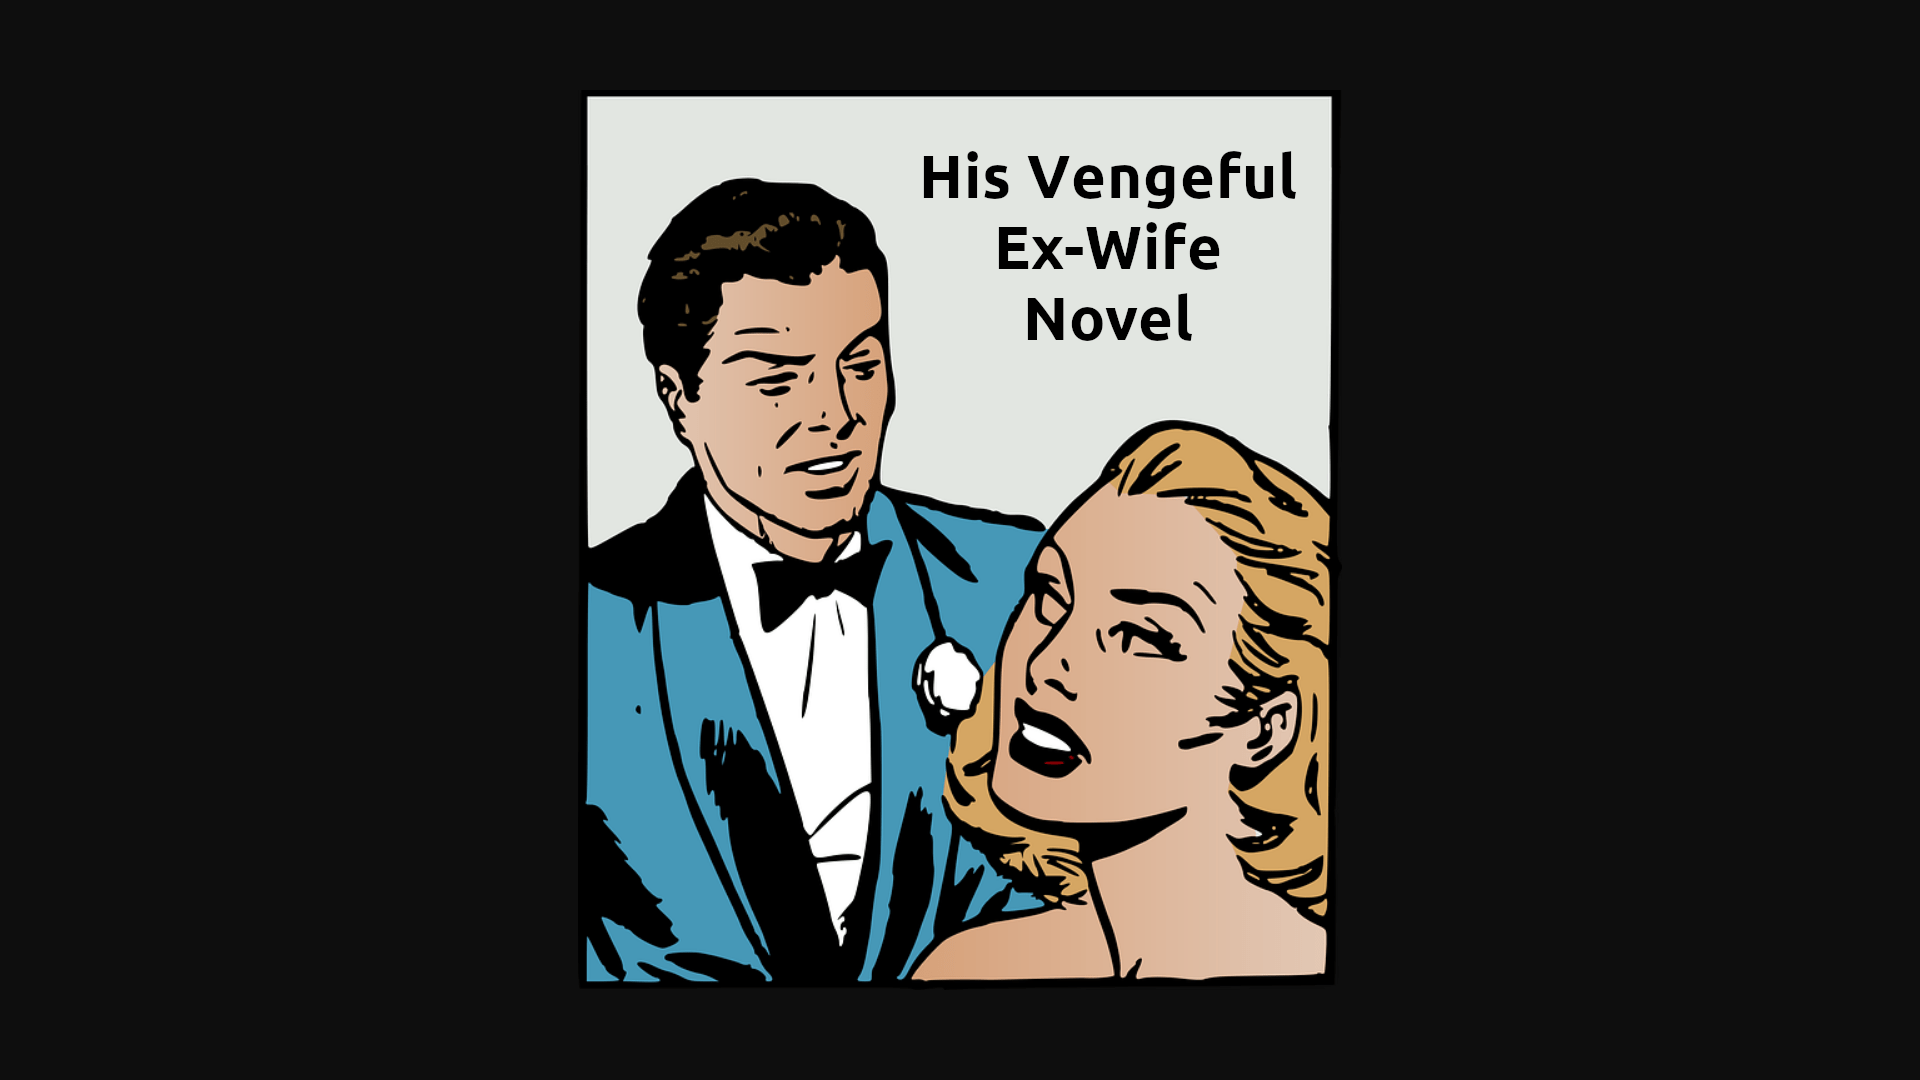 His Vengeful Ex-Wife Novel